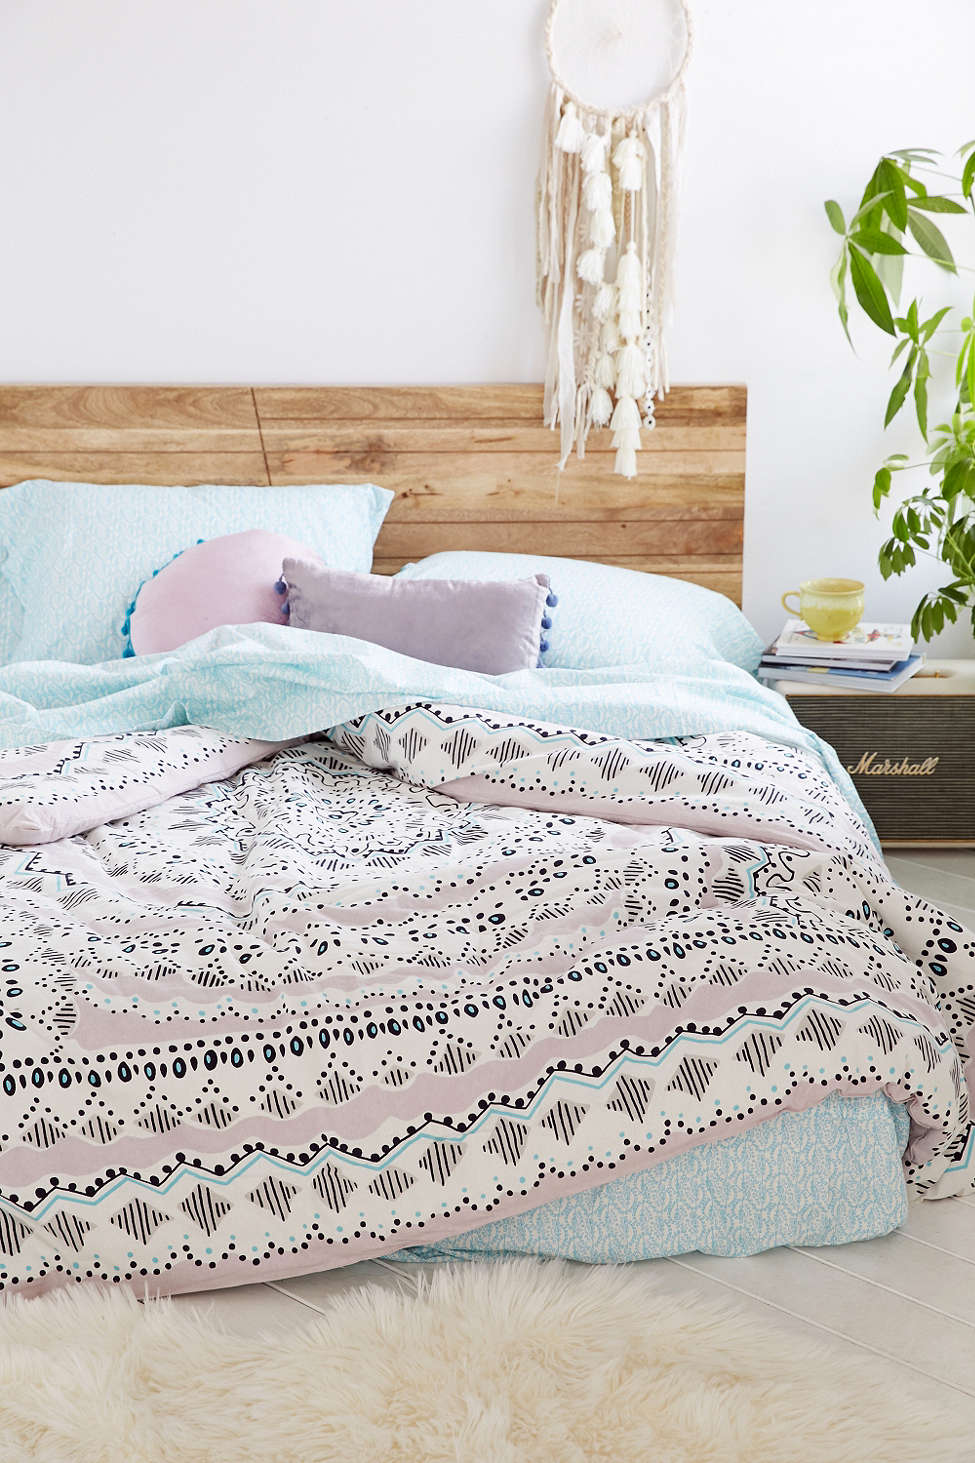 College Dorm Room Shopping Part 1: Bedding [Updated 2017] | Boho ...